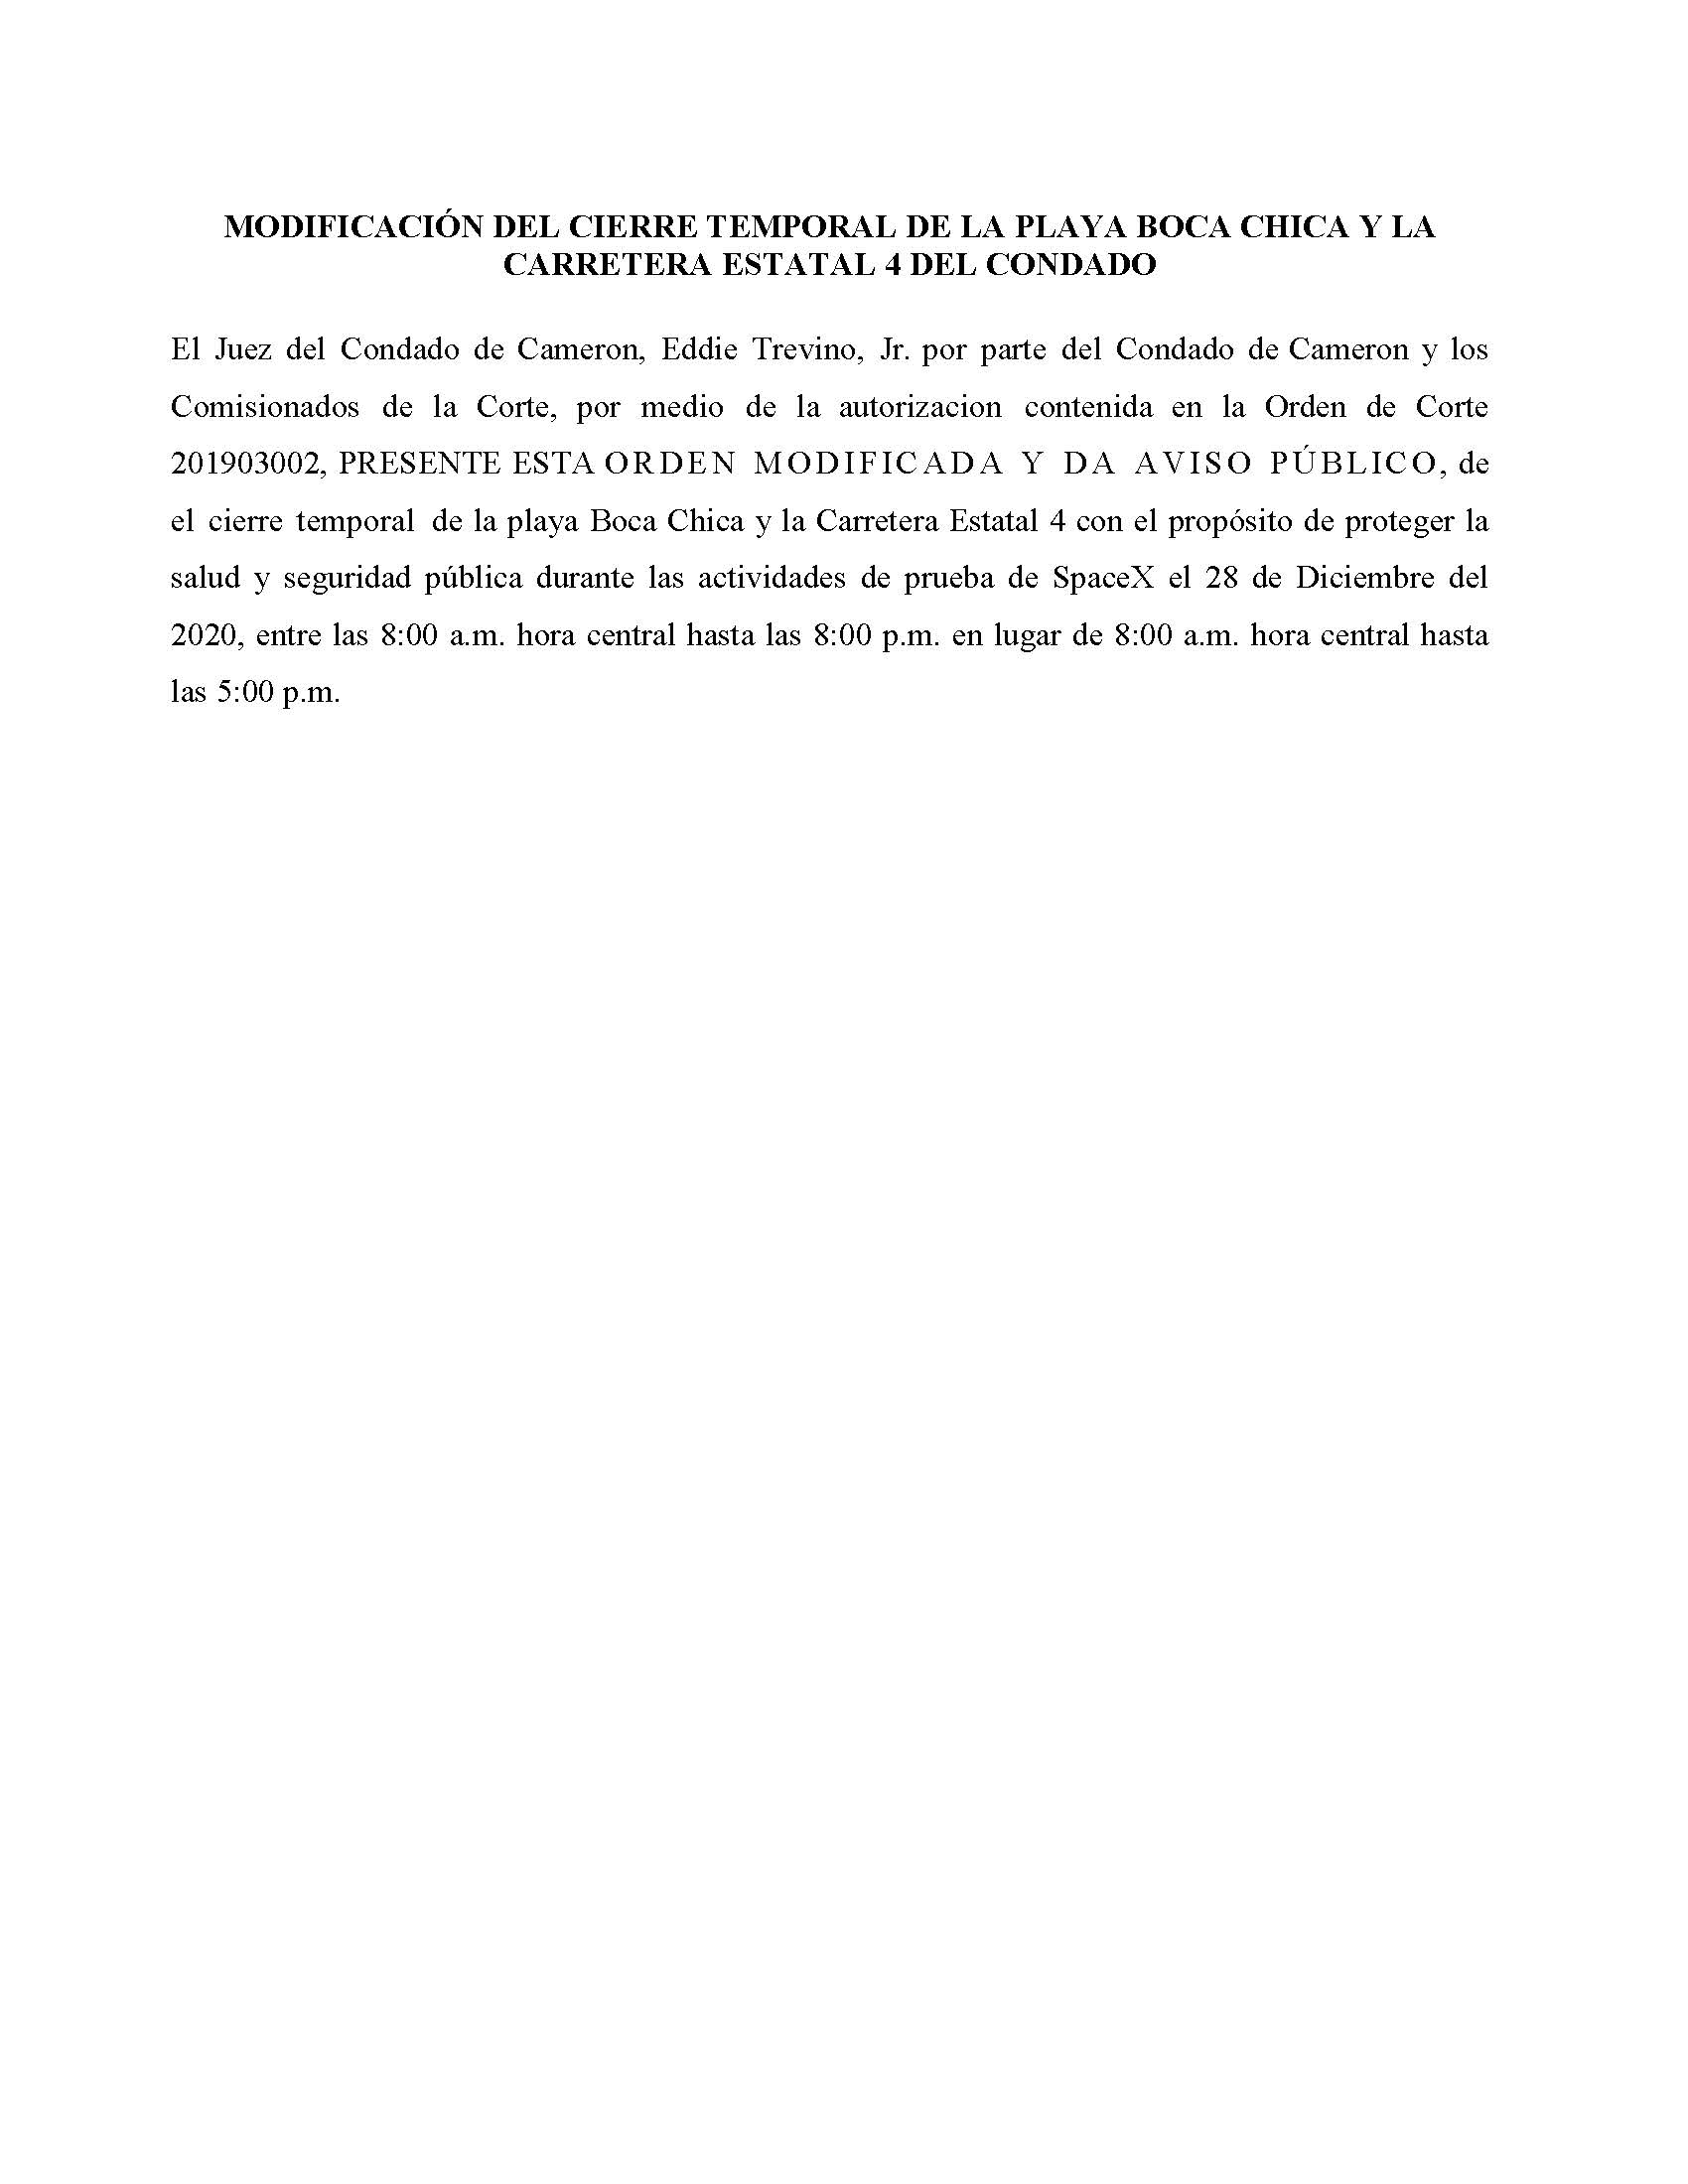 Amended Order In Spanish.12.28.20